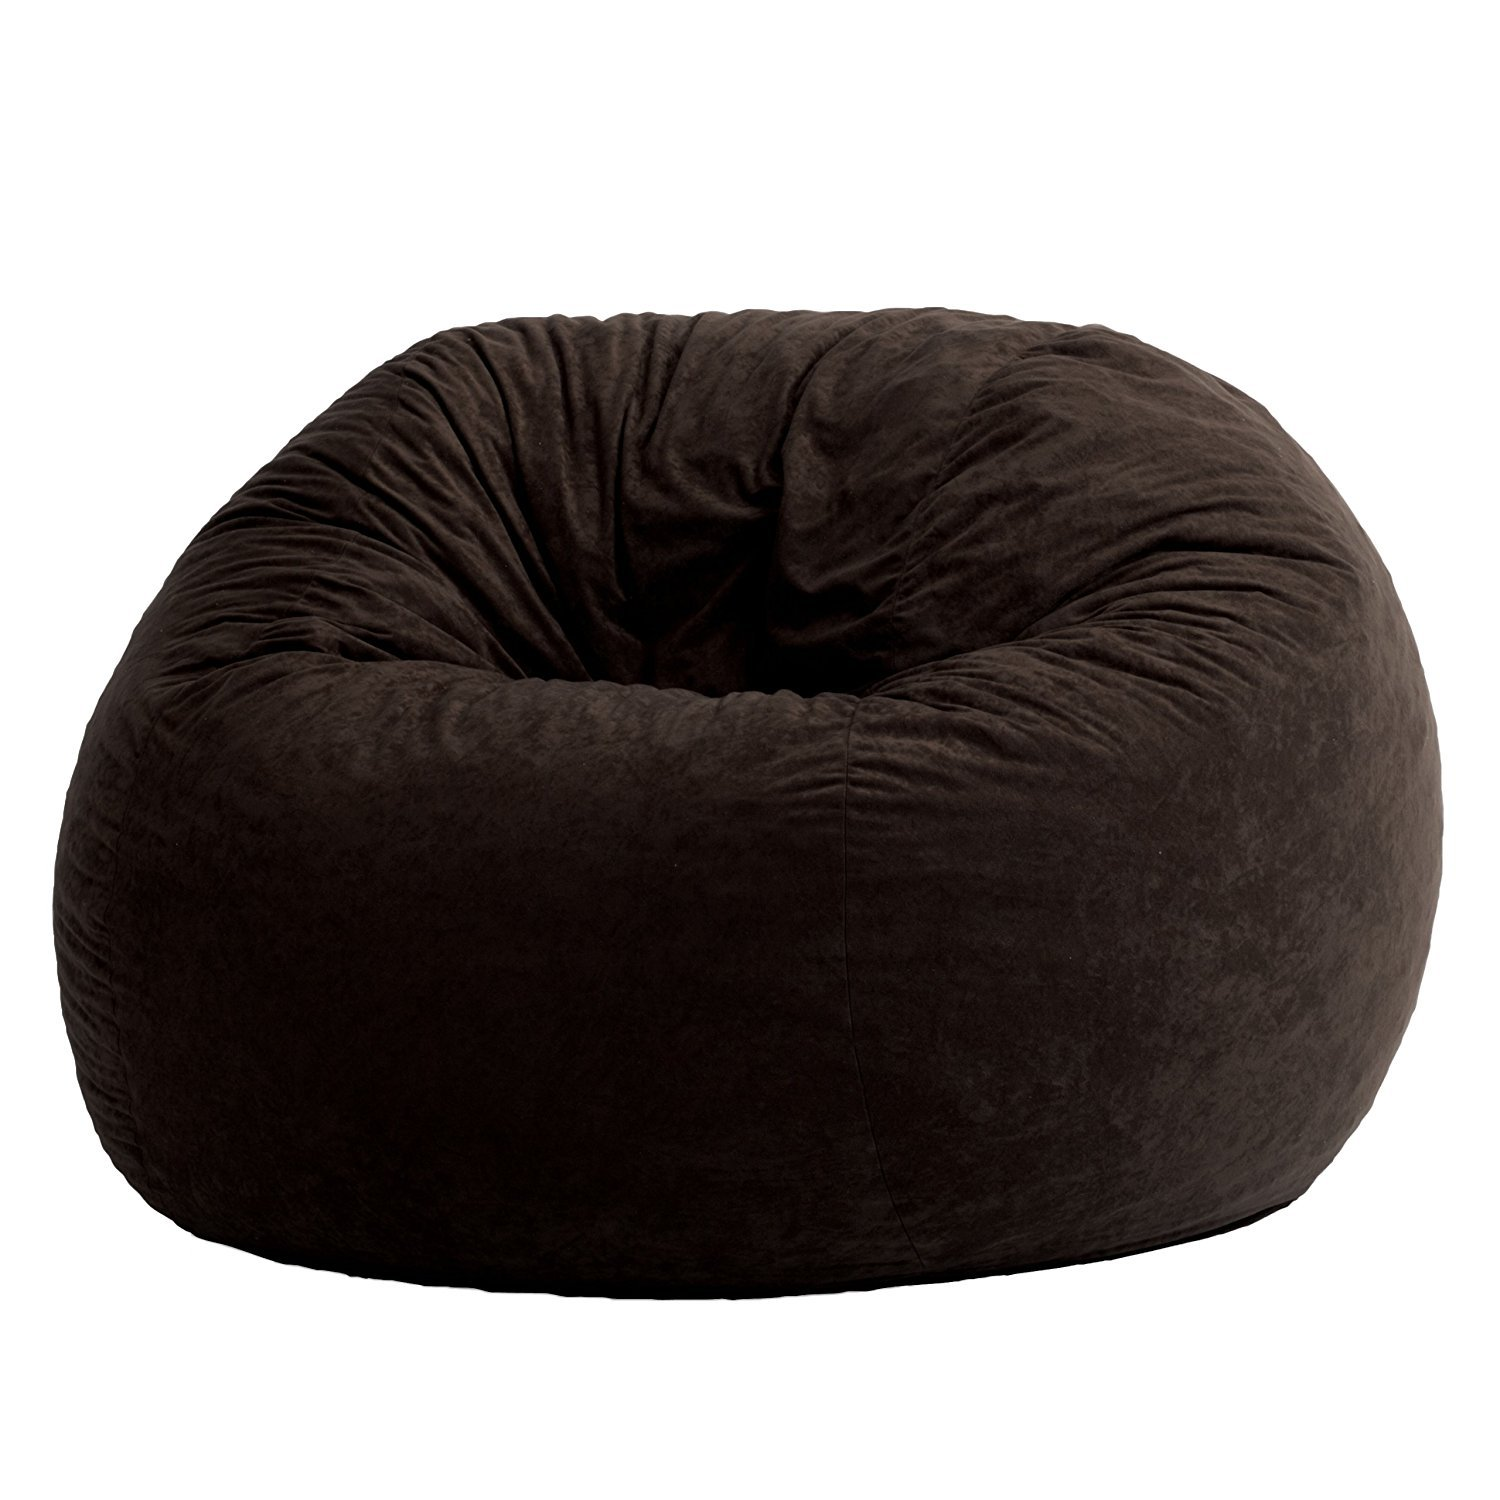 Adult Size Bean Bag Chair Home Furniture Design